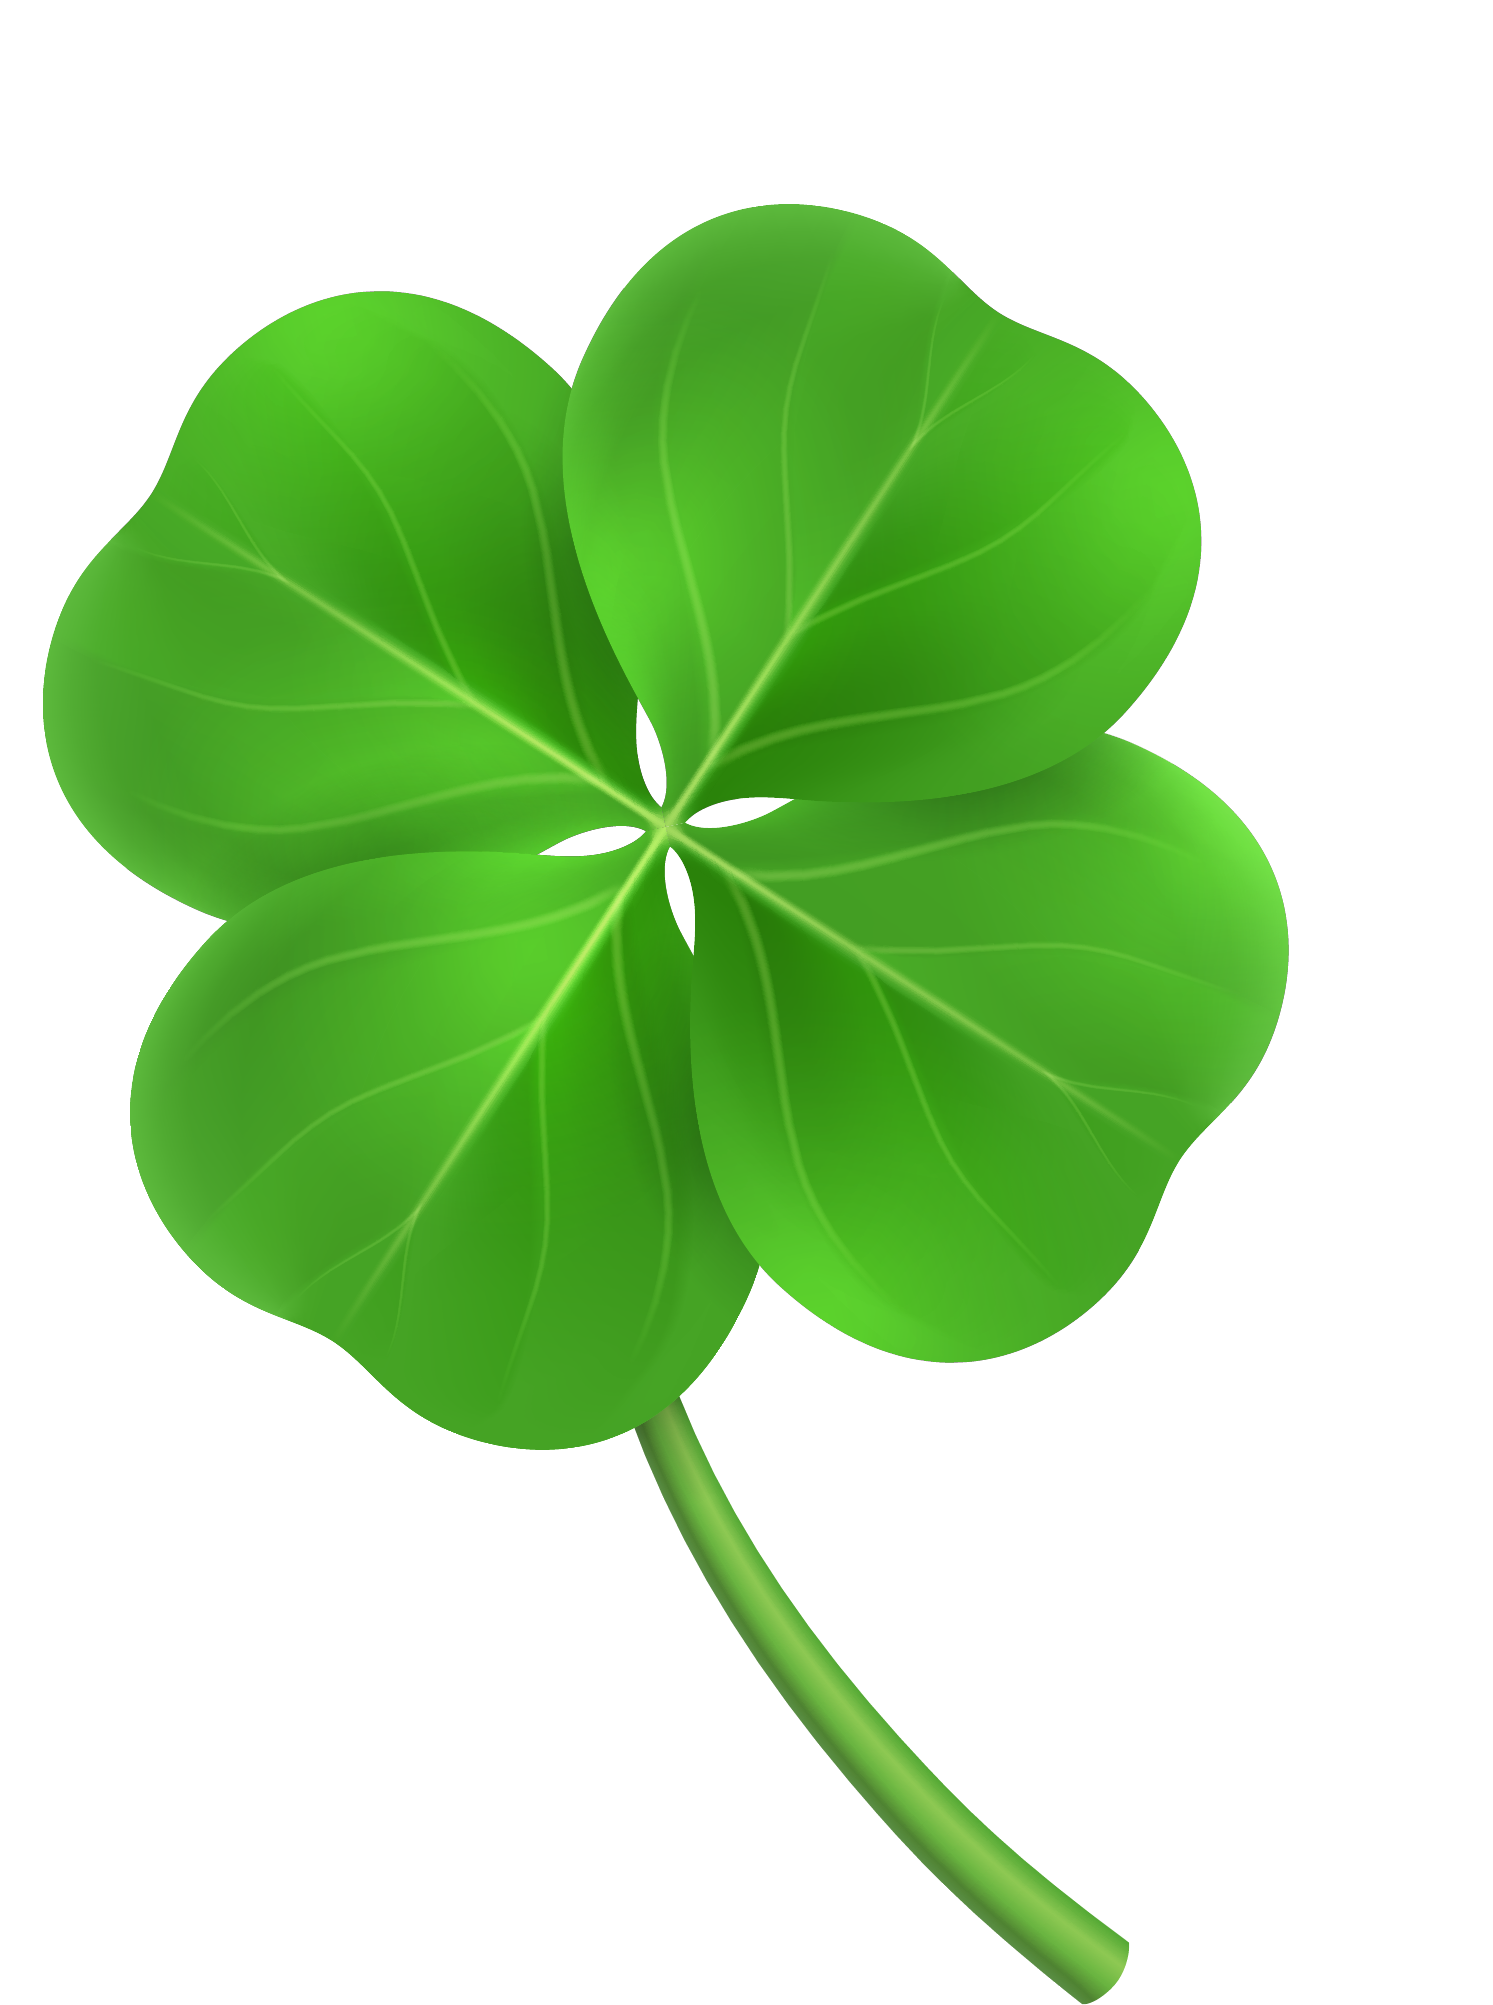 Png free images only. Transparent clover clipart transparent library